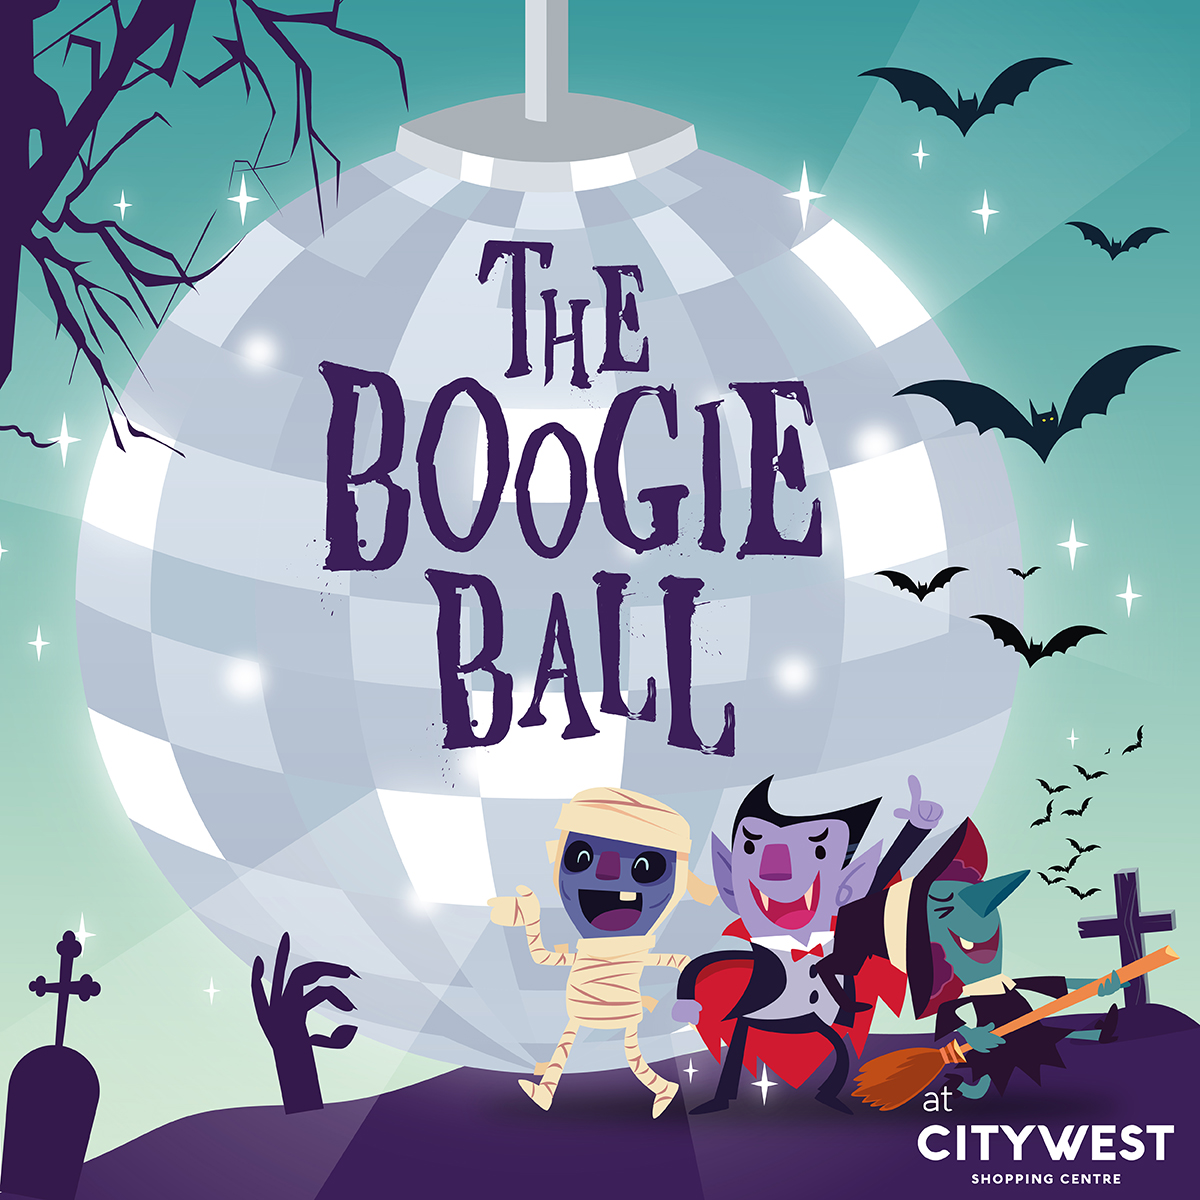 The Boogie Ball!